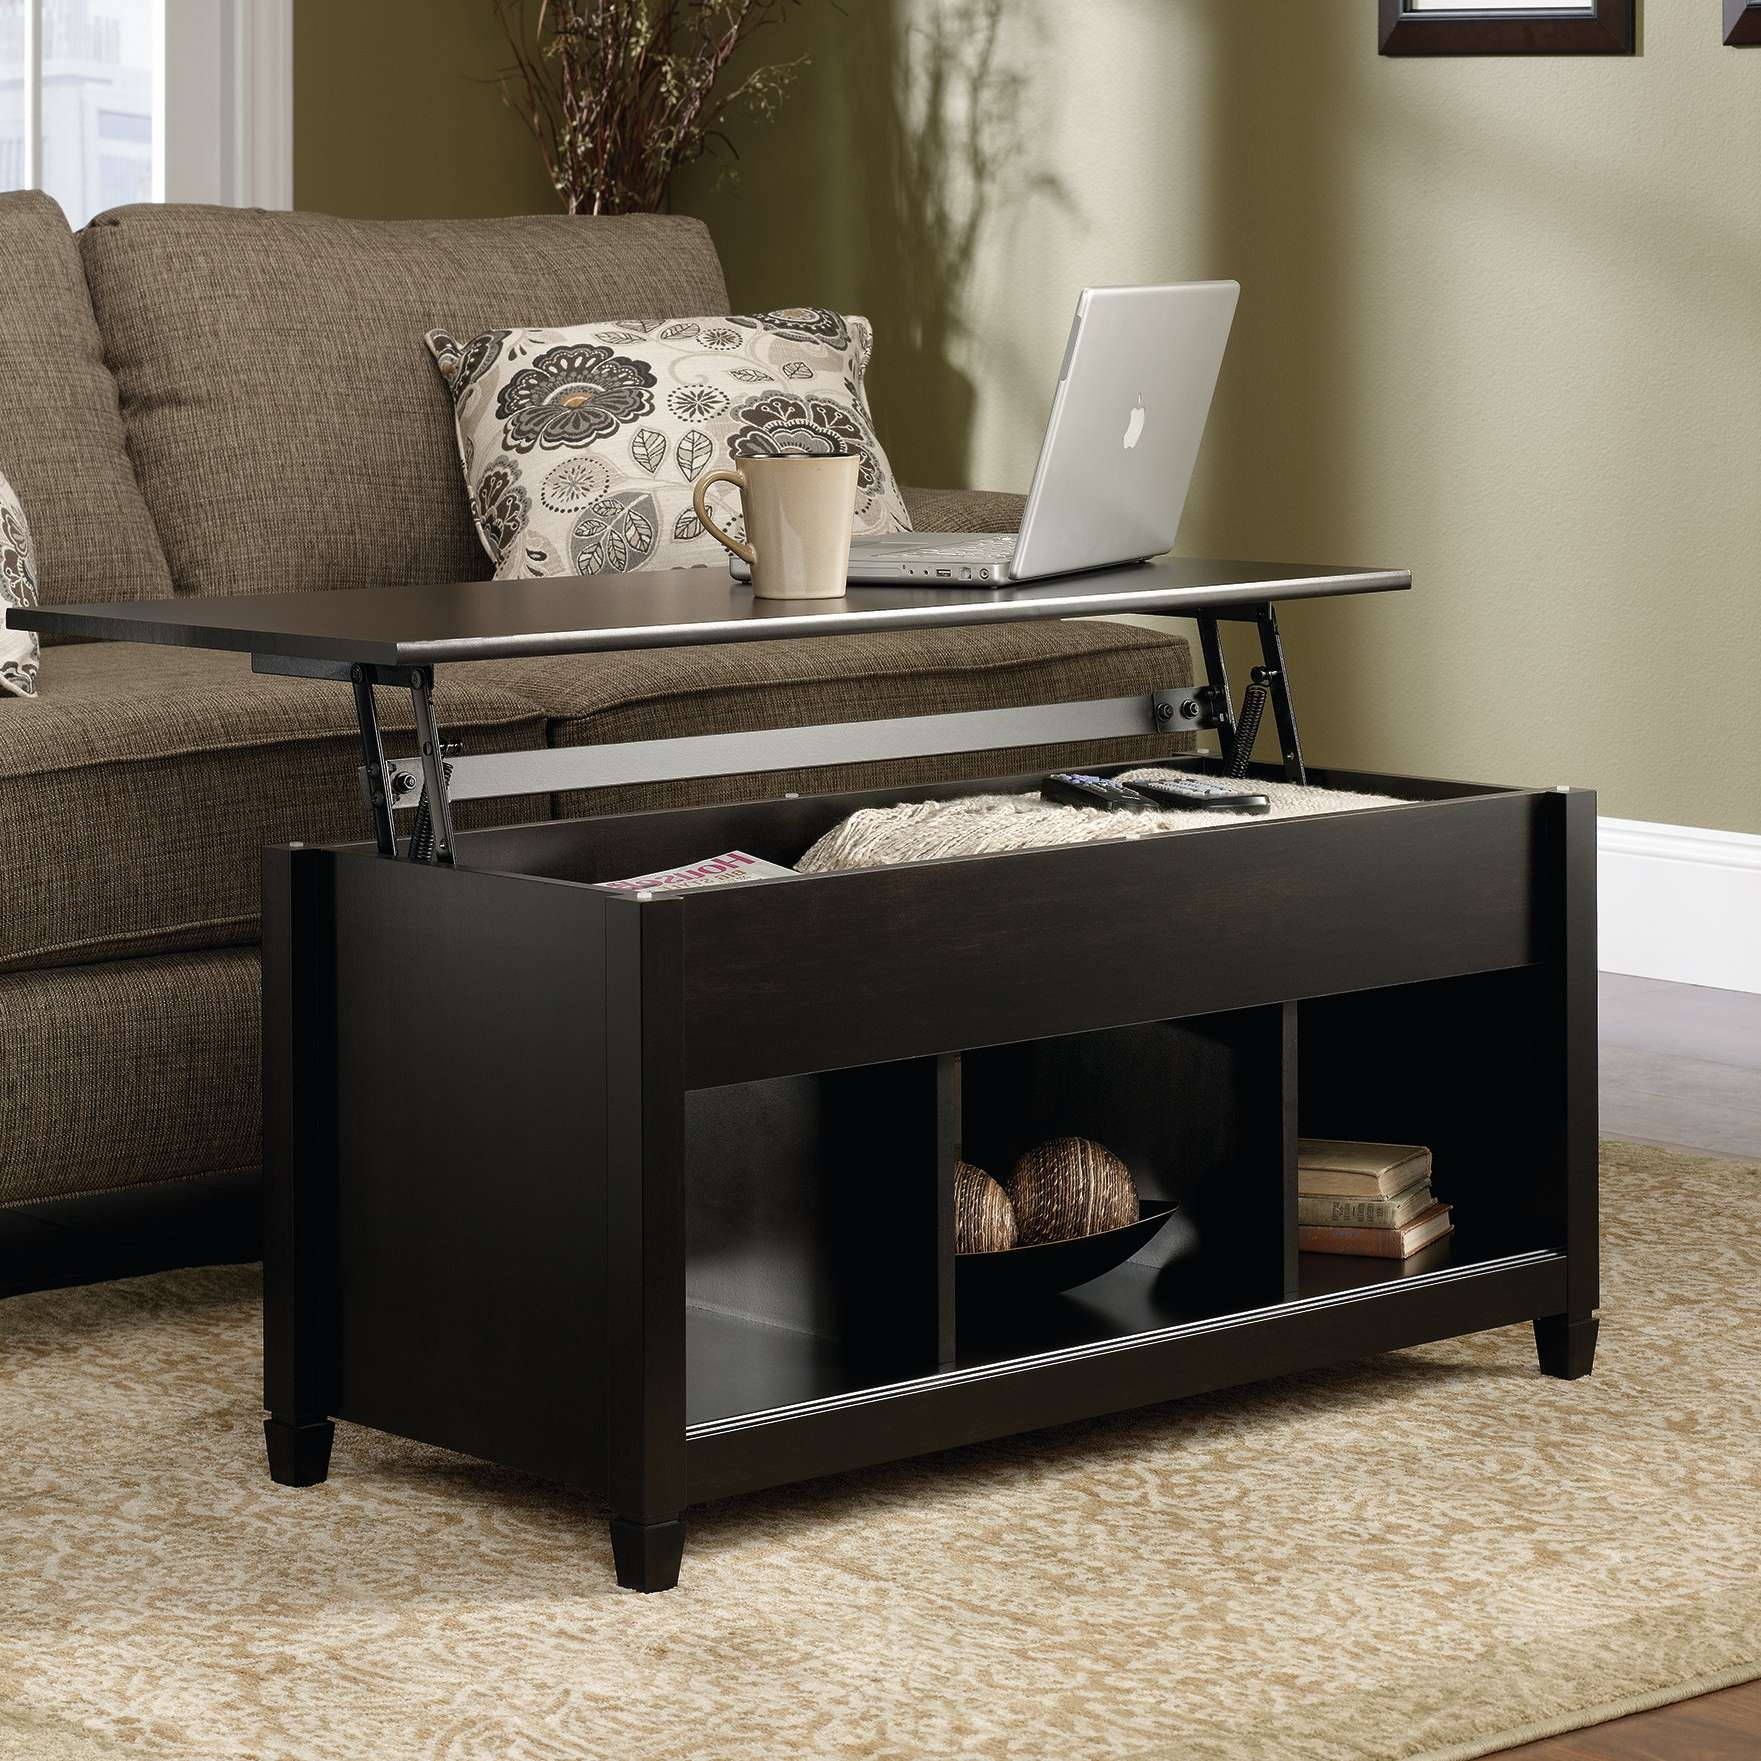 Wayfair Within Famous Coffee Tables Extendable Top (View 17 of 20)